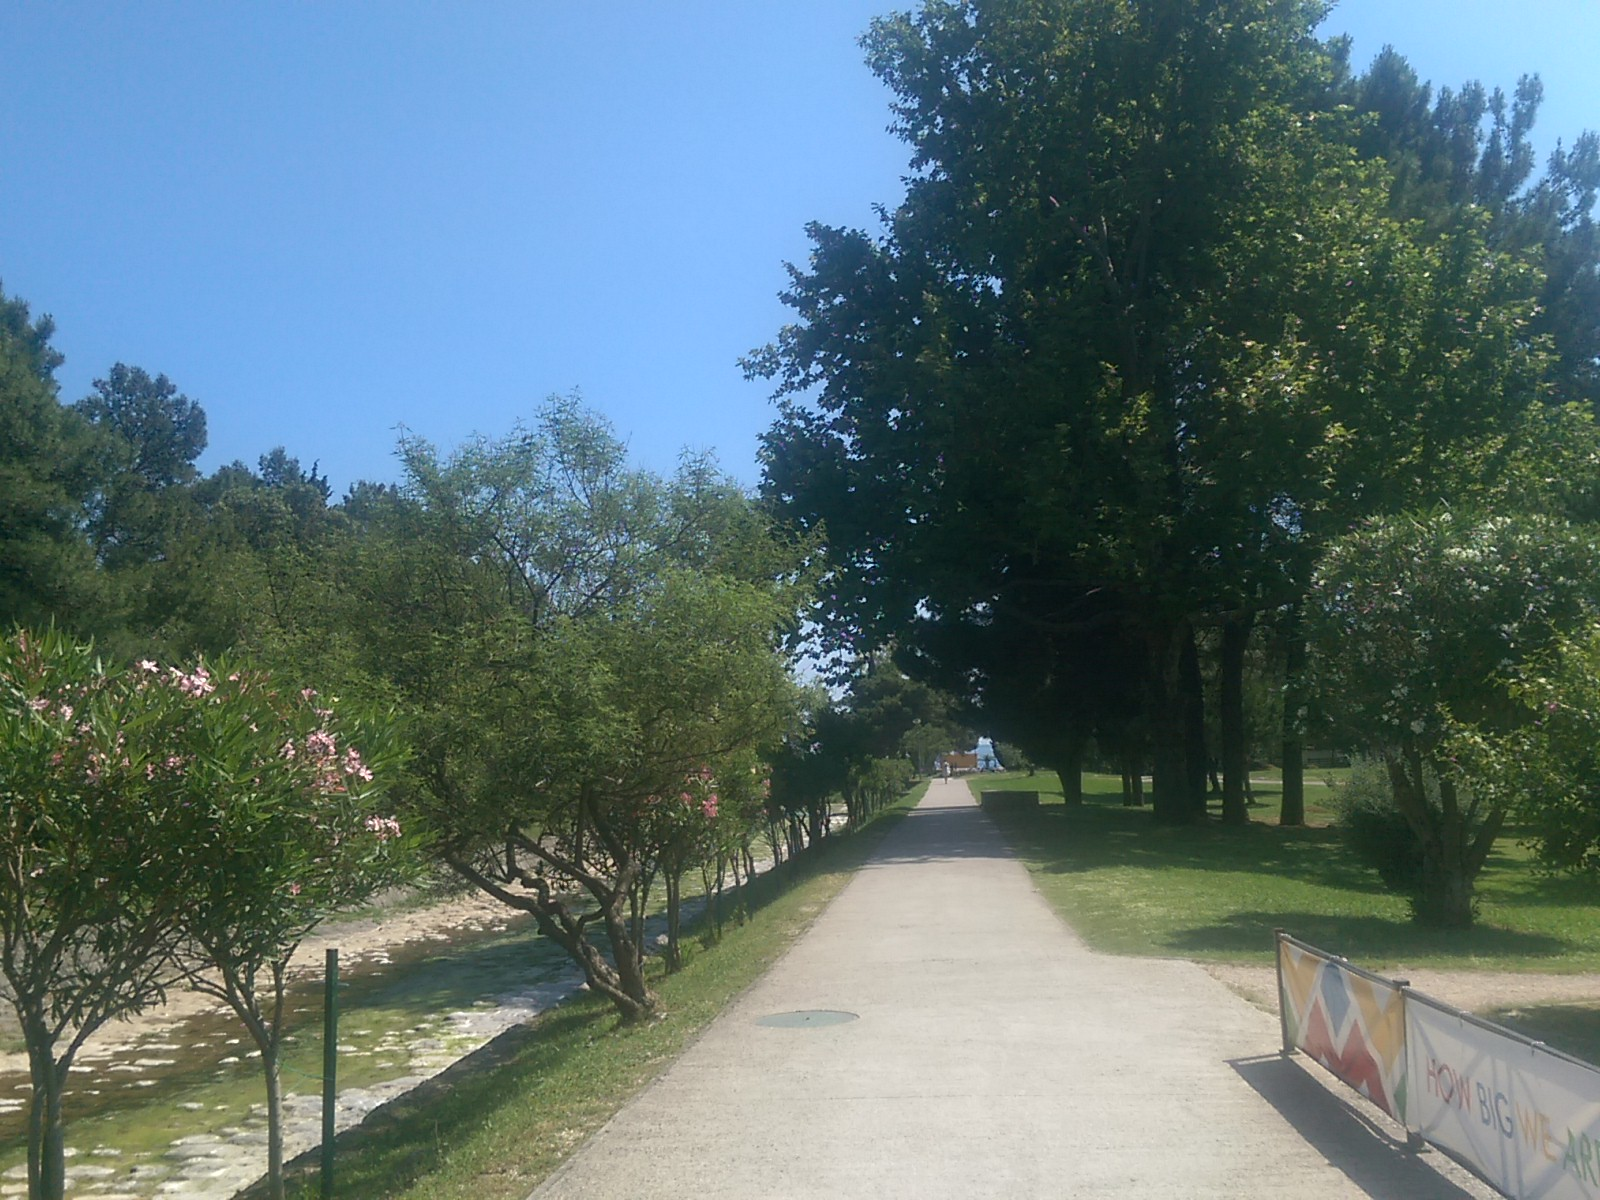 A concrete path into the distance, with grass and trees each side